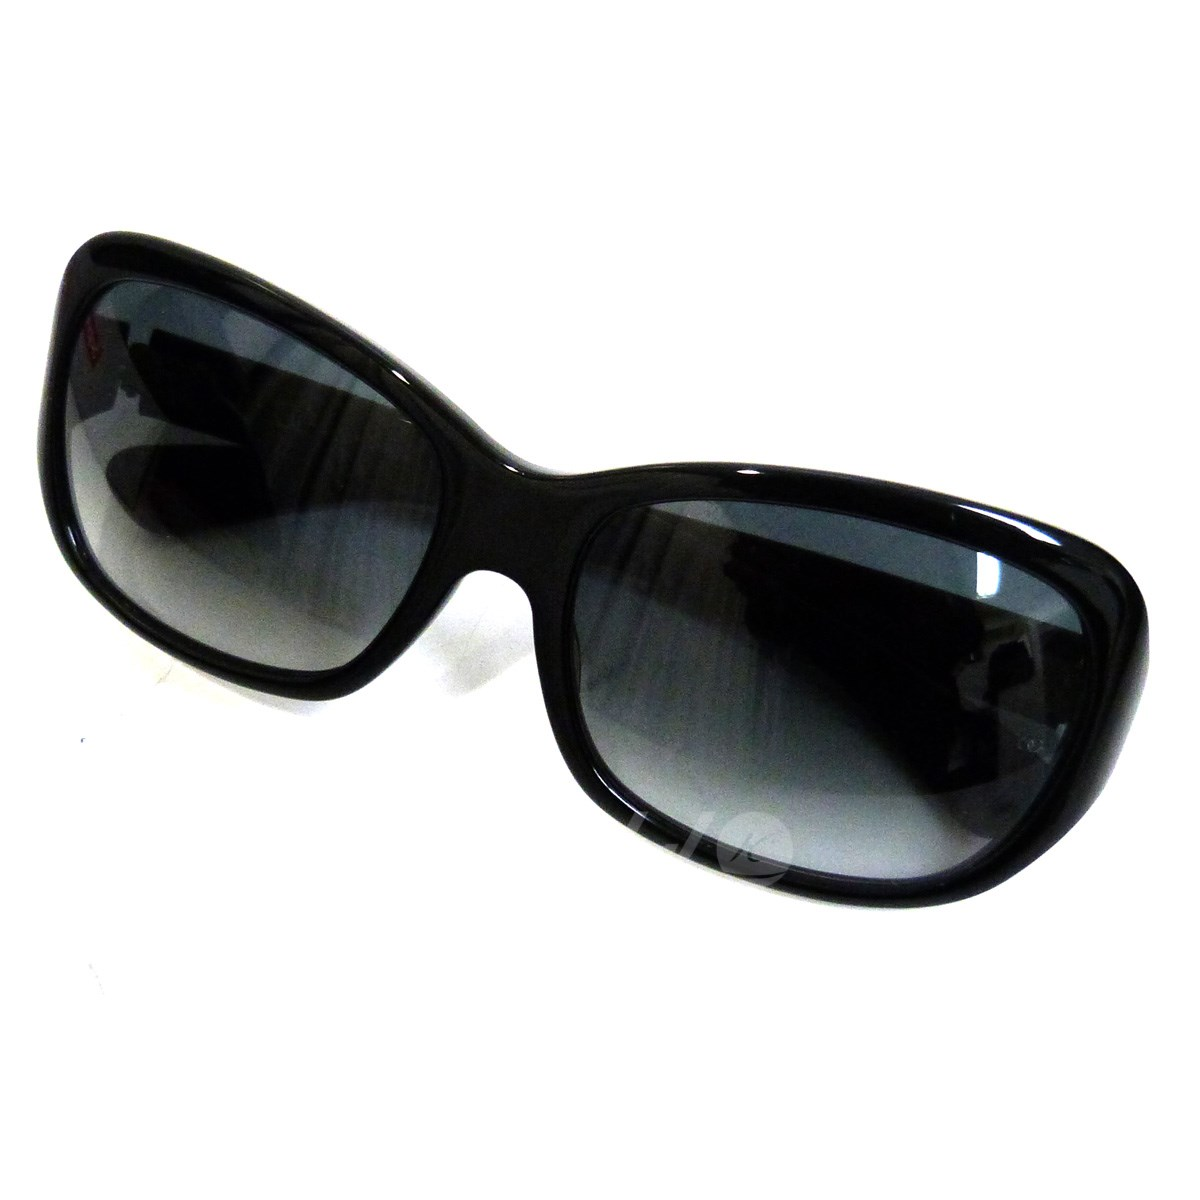 64691b0d5cad OLIVER GOLDSMITH sunglasses black size: 58 17 135 (Oliver Goldsmith) ...